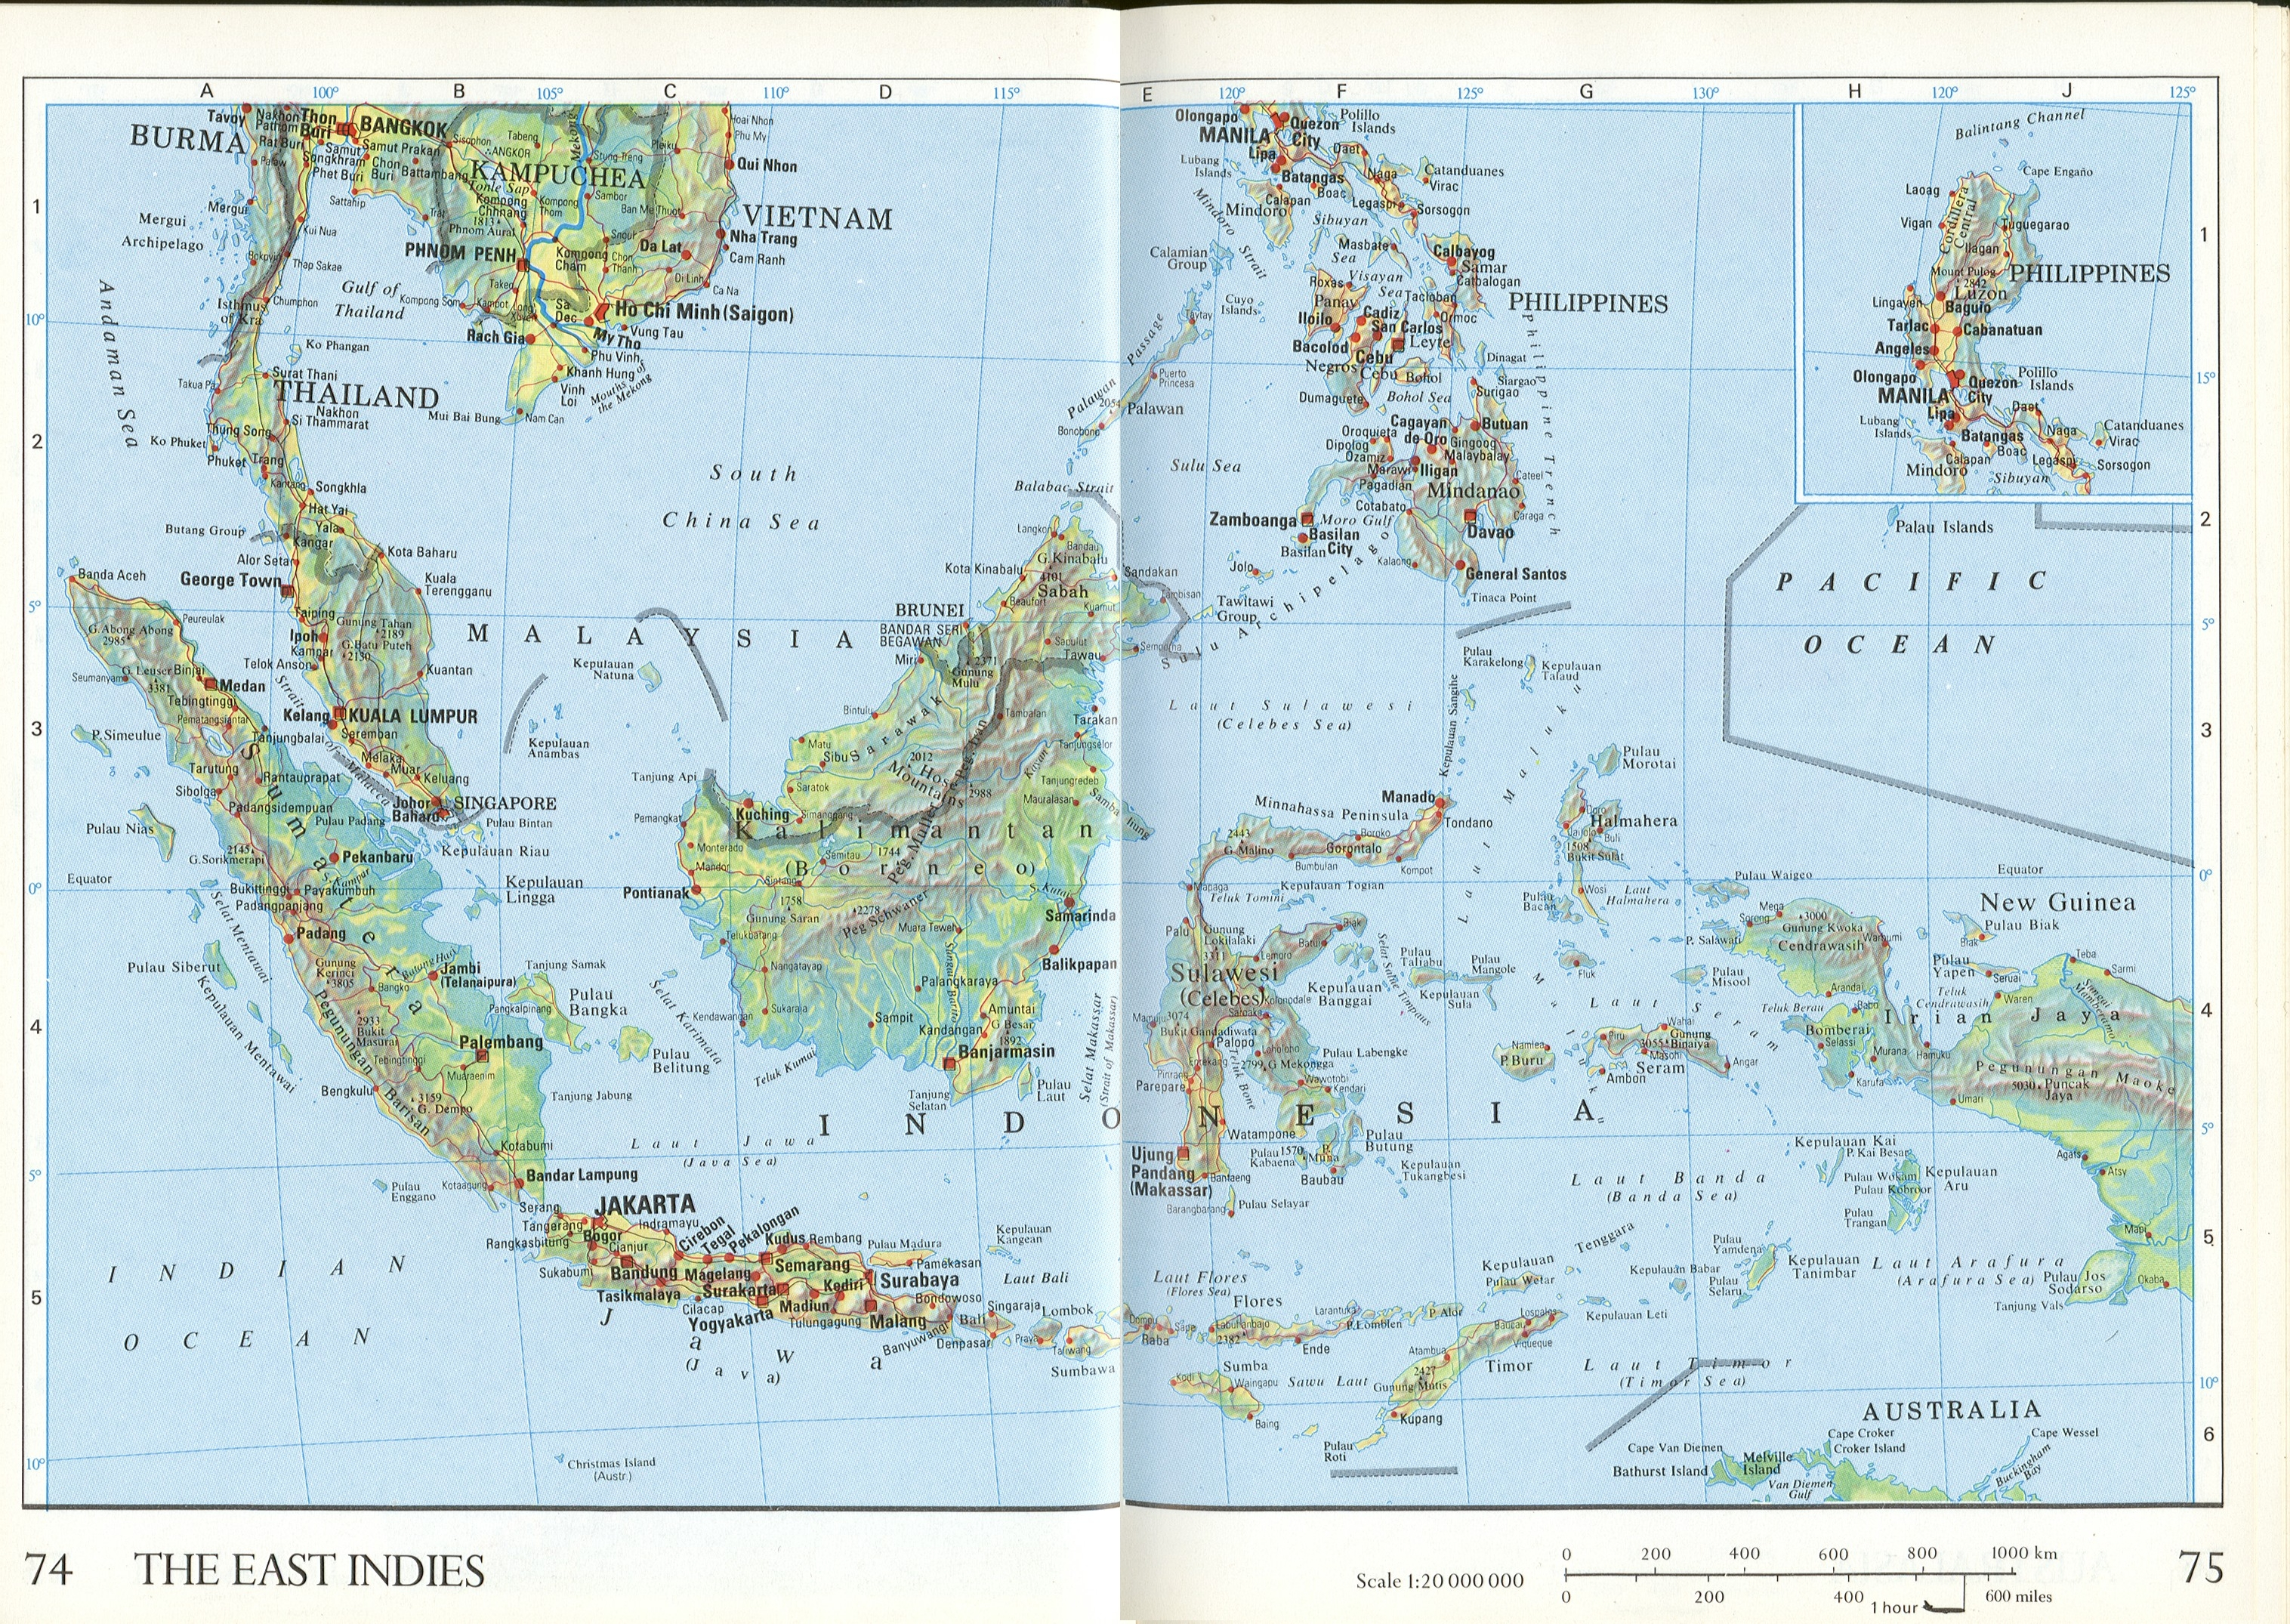 The East Indies Map